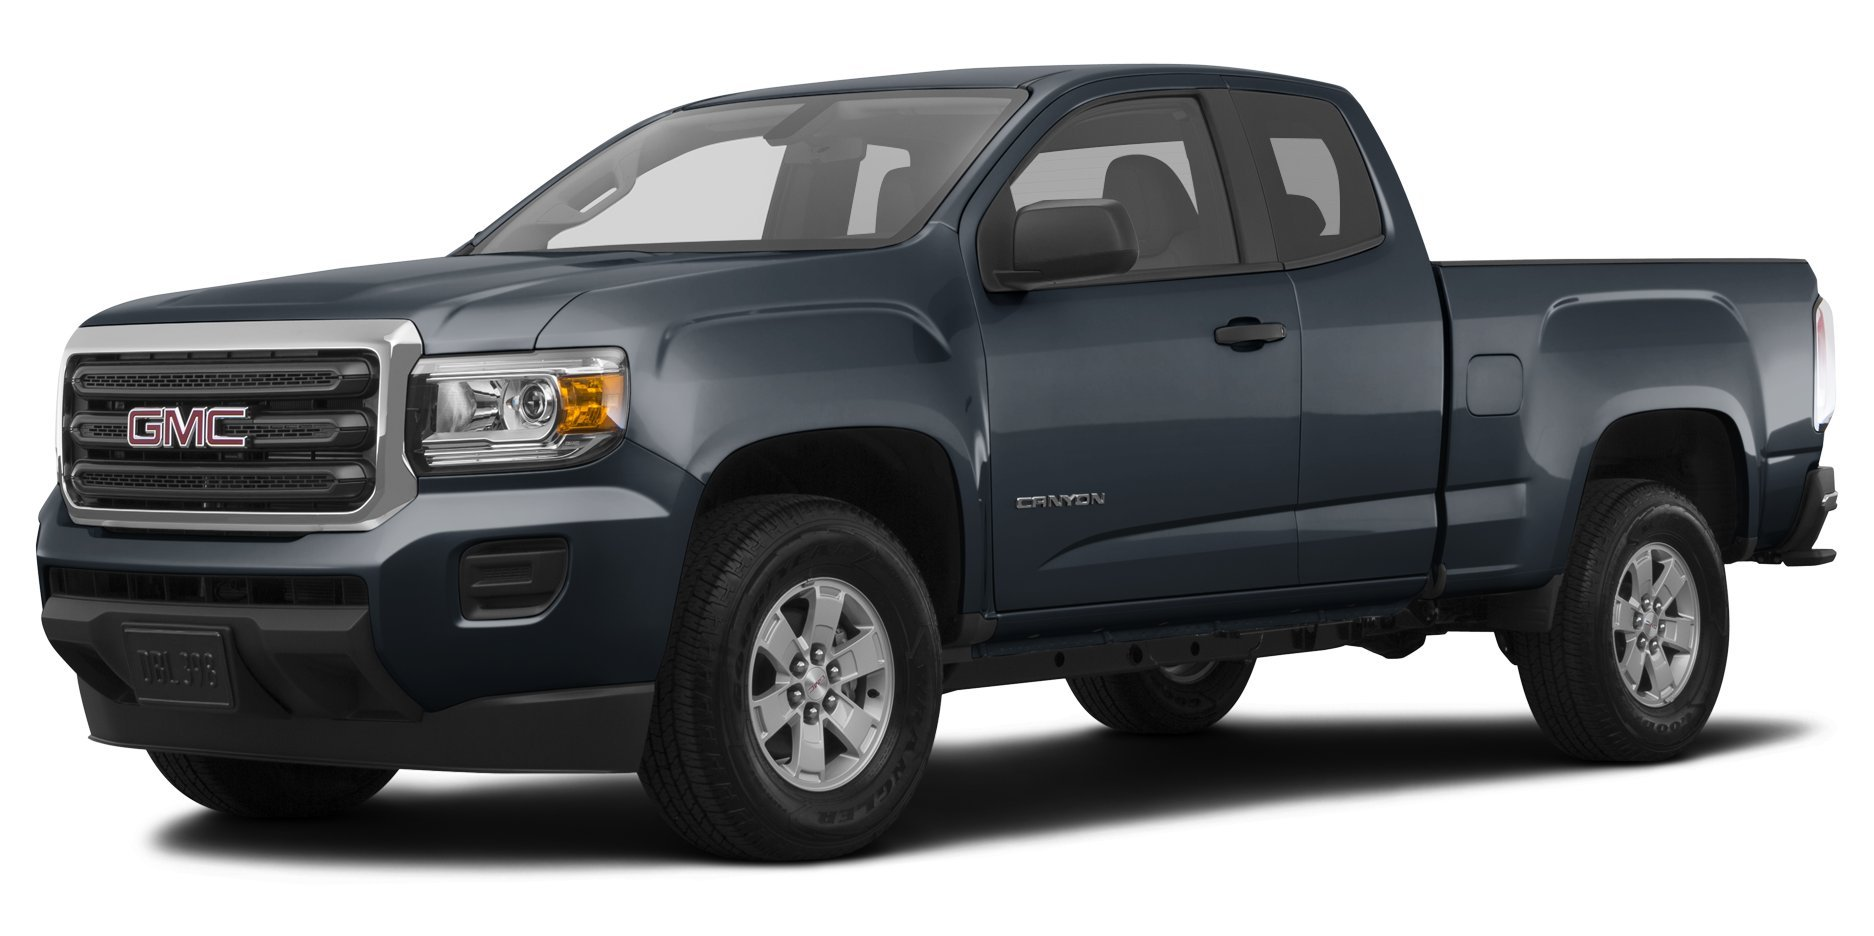 2017 chevrolet colorado reviews images and specs vehicles. Black Bedroom Furniture Sets. Home Design Ideas